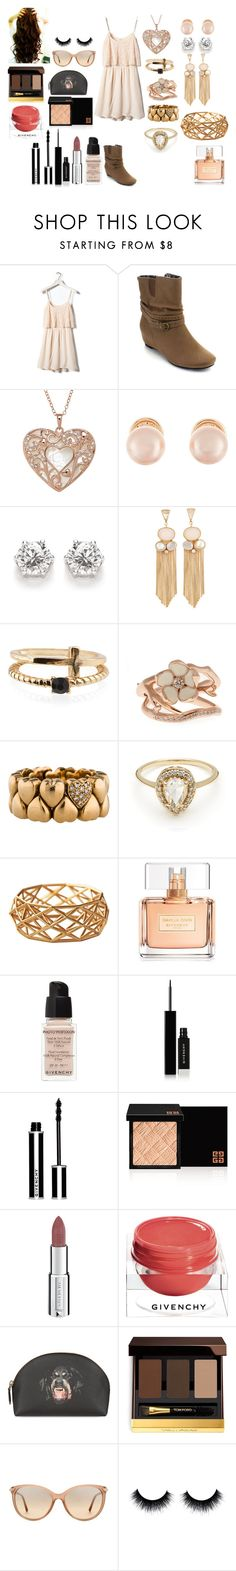 """""""Untitled #280"""" by asiebenthaler ❤ liked on Polyvore featuring Pull&Bear, Kenneth Jay Lane, Accessorize, Shaun Leane, Cartier, Givenchy, Tom Ford and Burberry"""